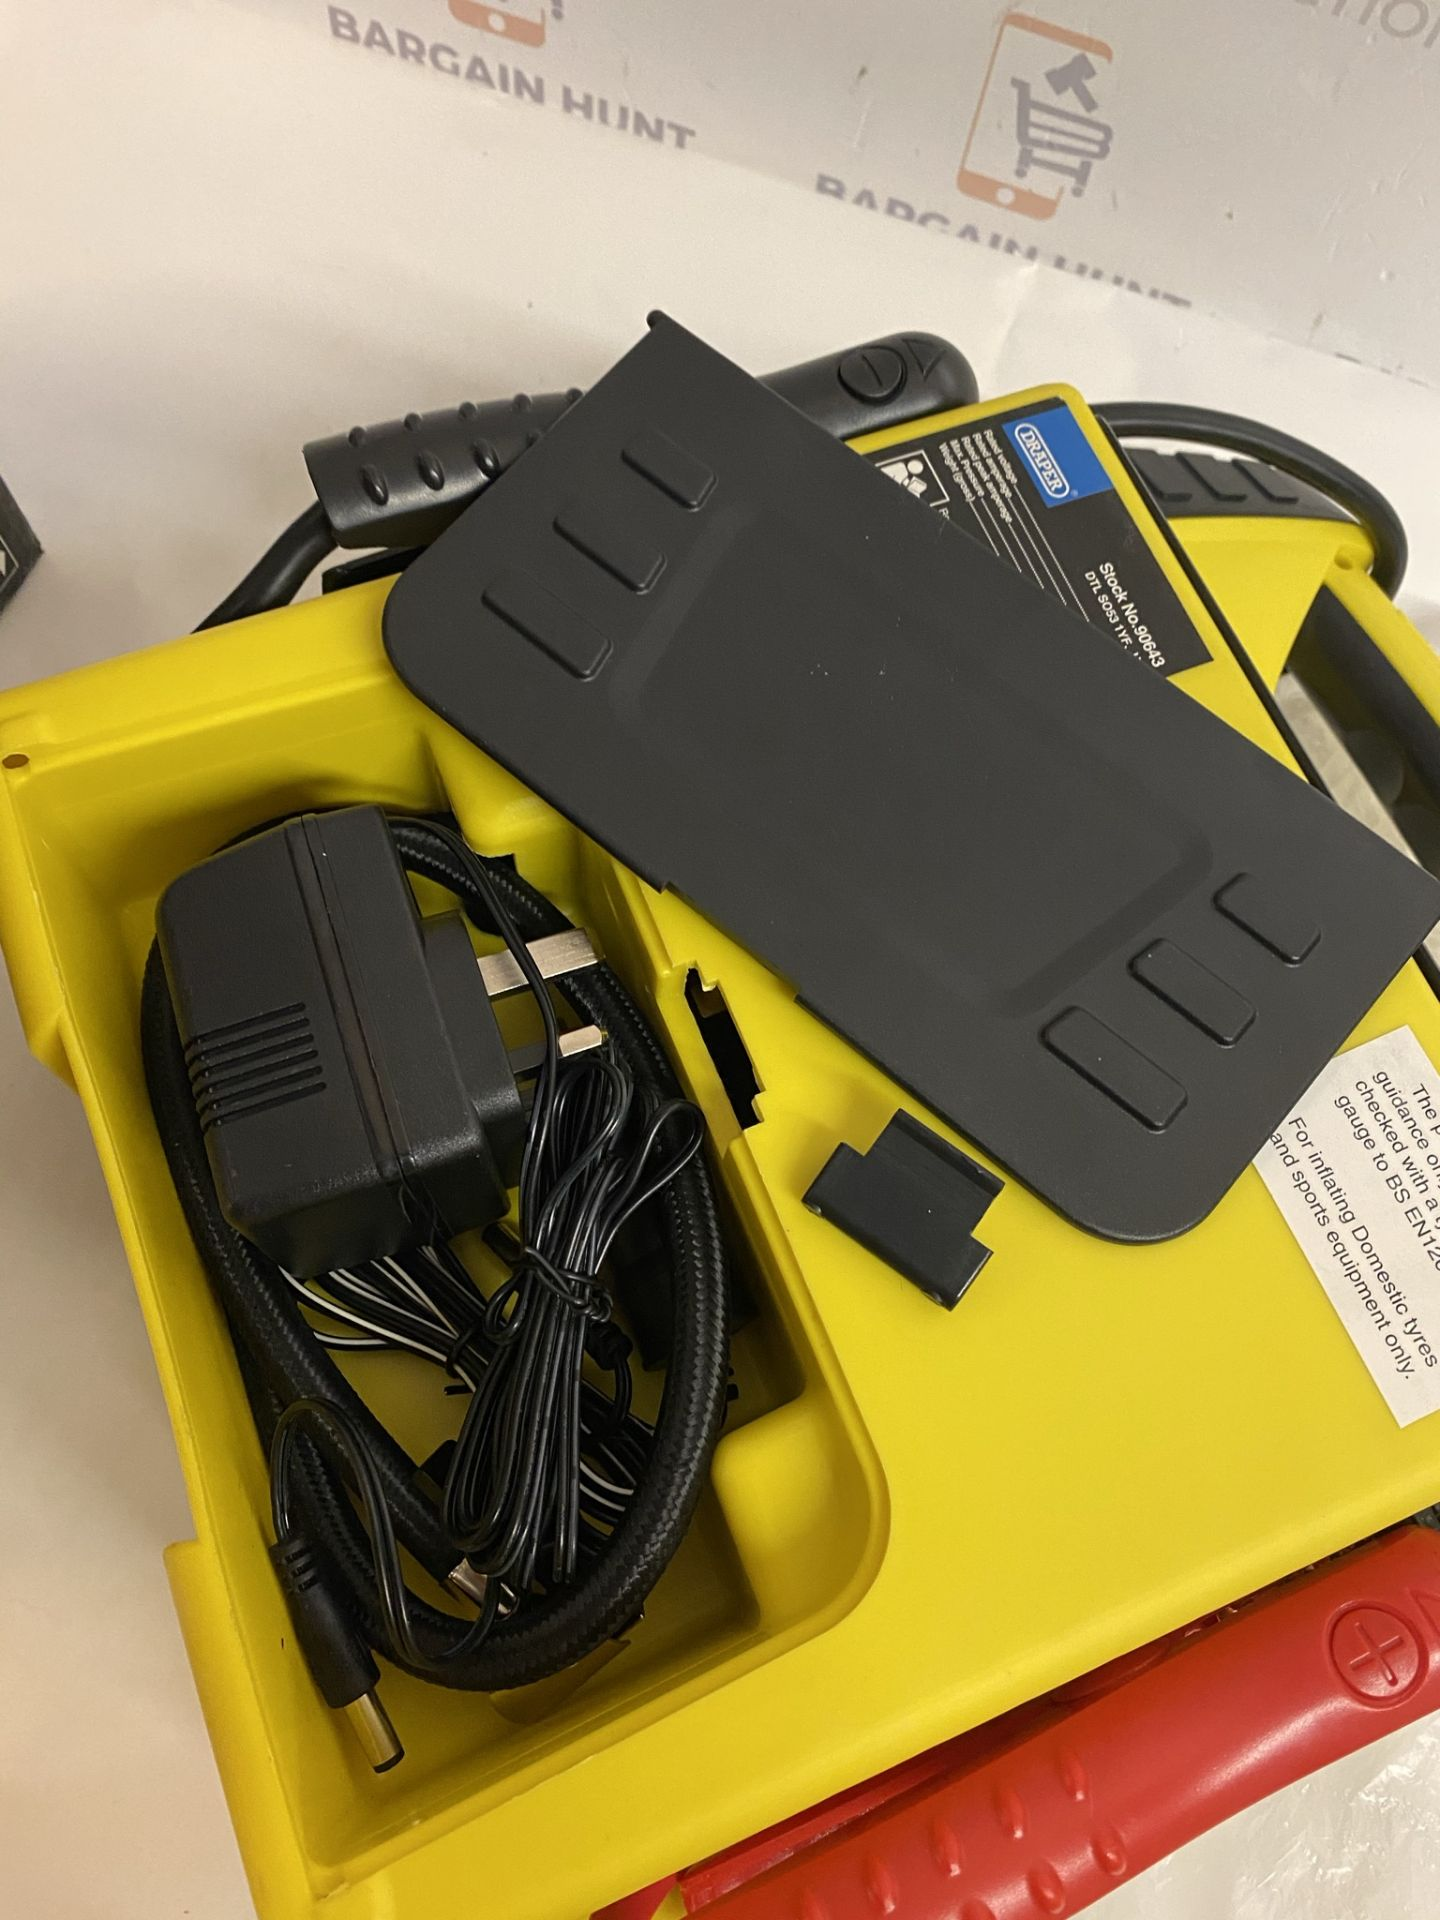 Draper 12V Power Pack (minor crack and rear cover broken, see image) RRP £75 - Image 3 of 3